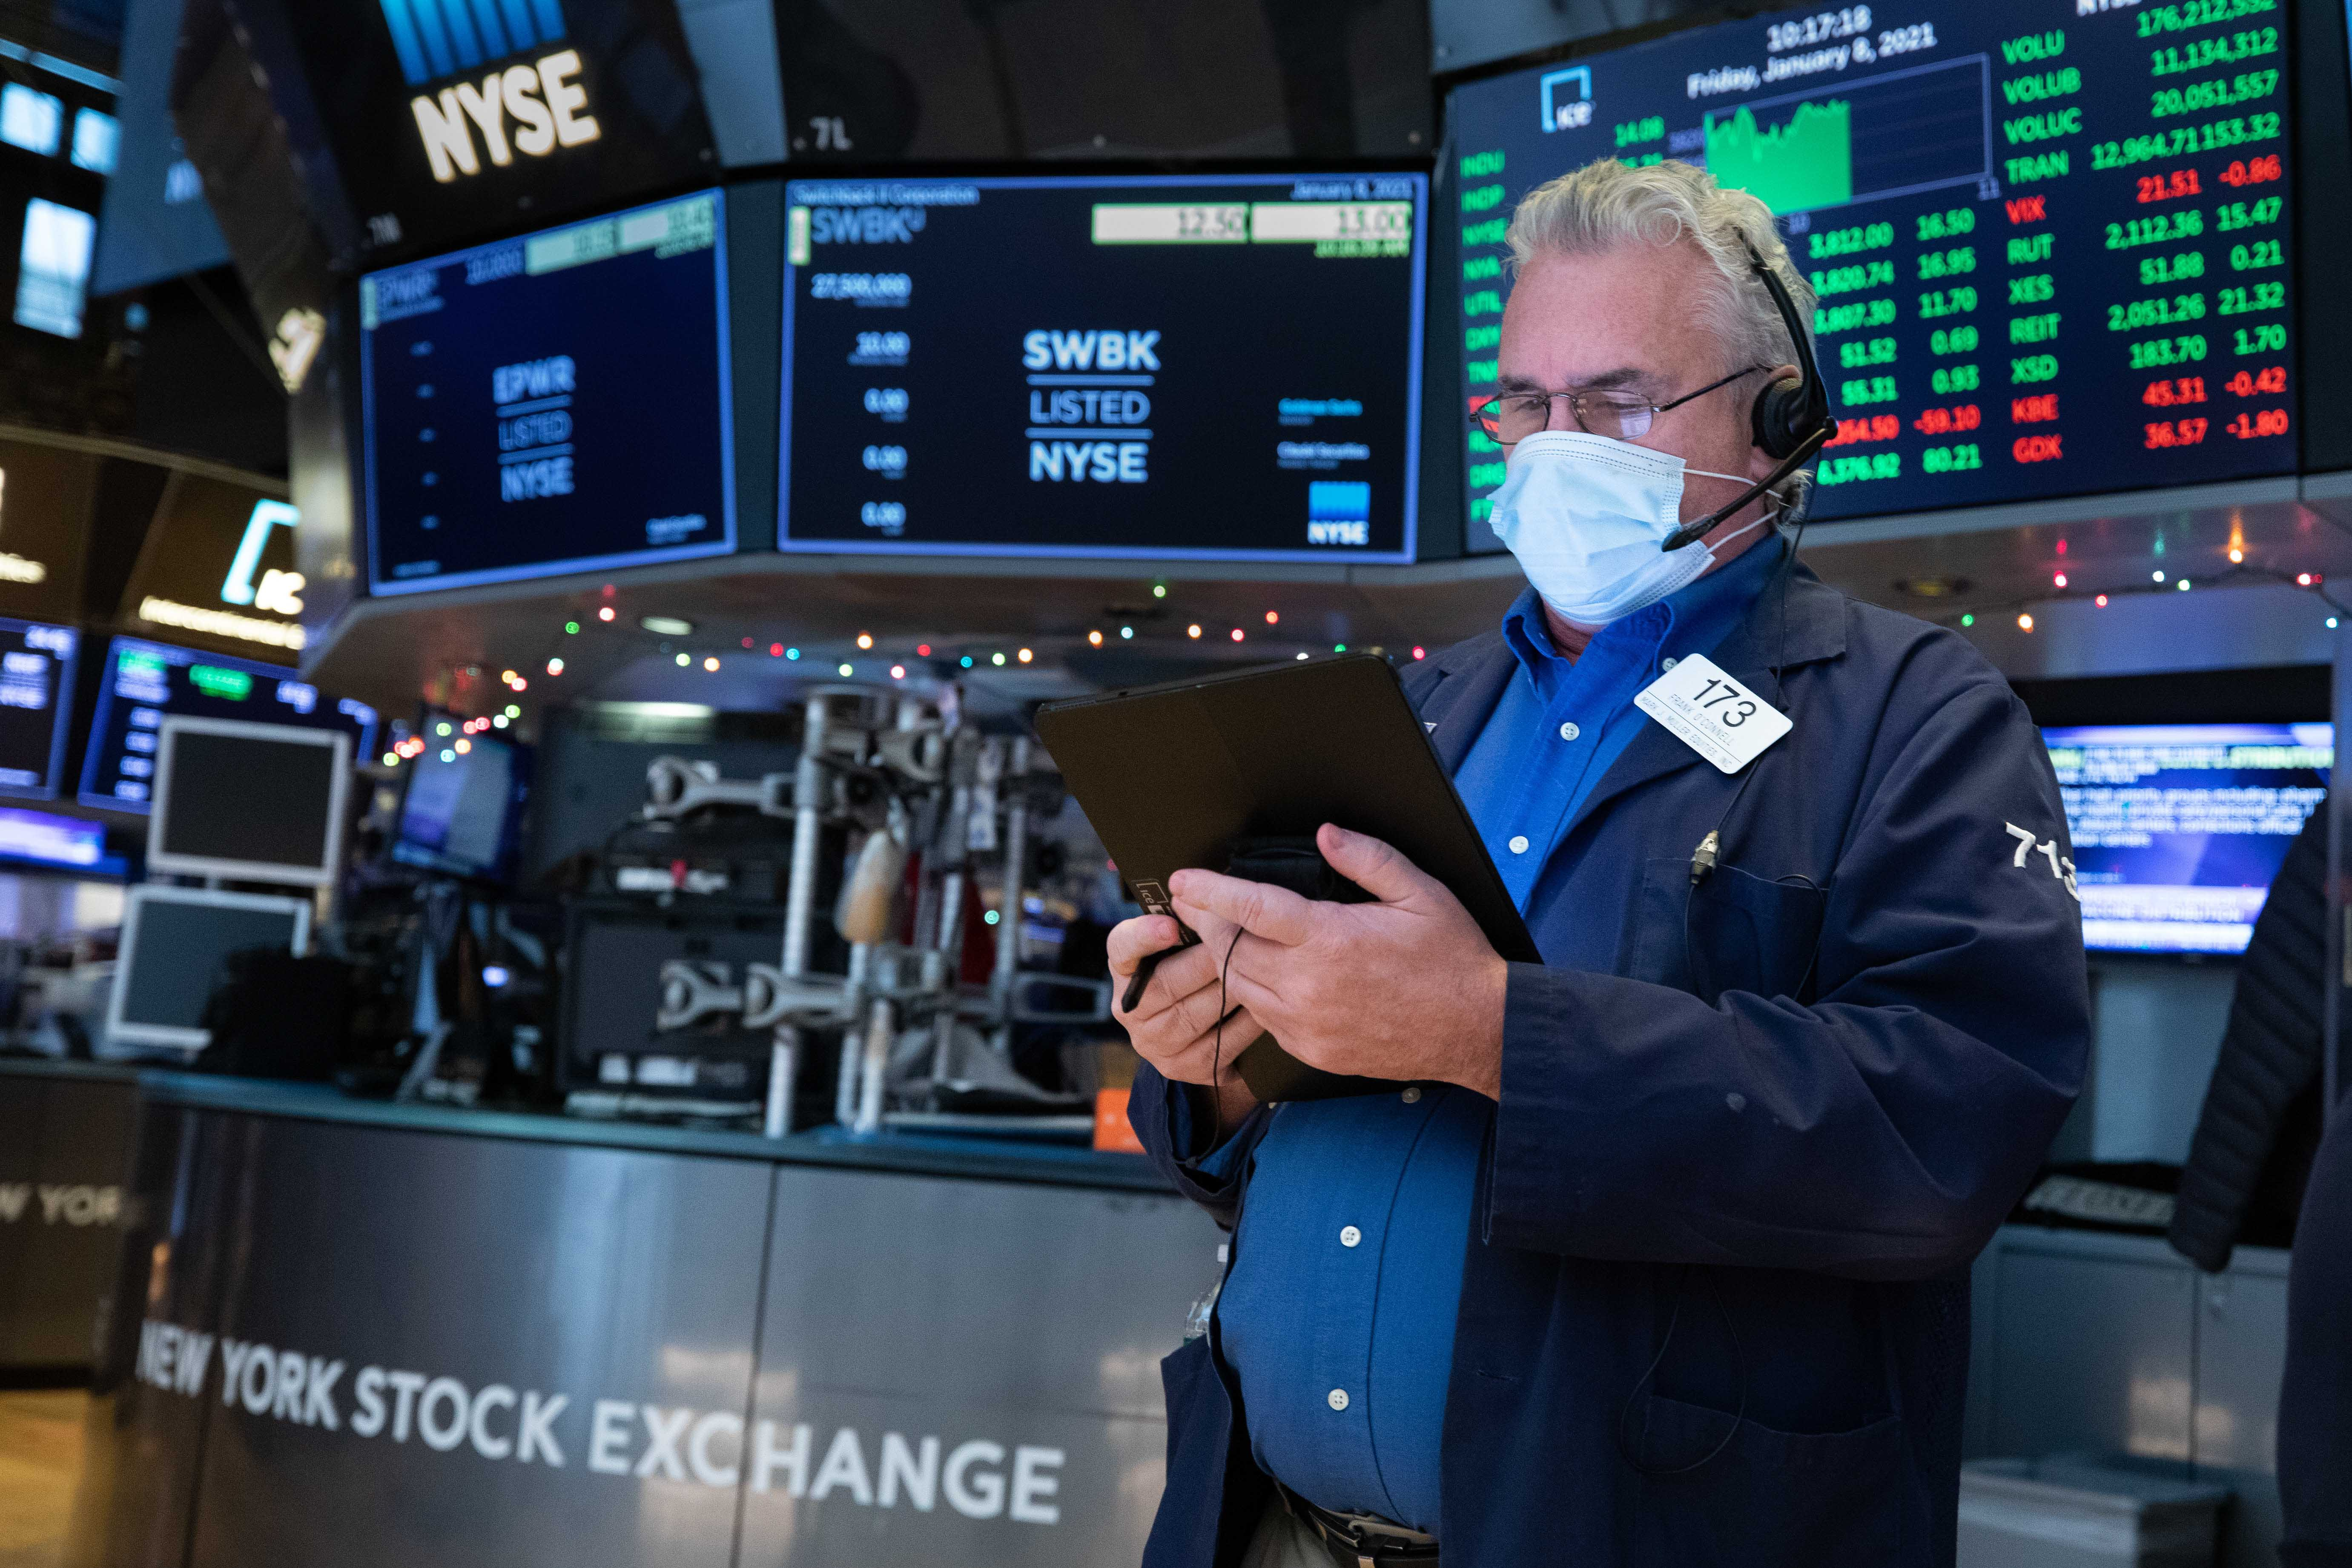 U.S. stock futures rose on Wednesday night as traders kept an eye on interest rates and lingering turmoil in Washington.